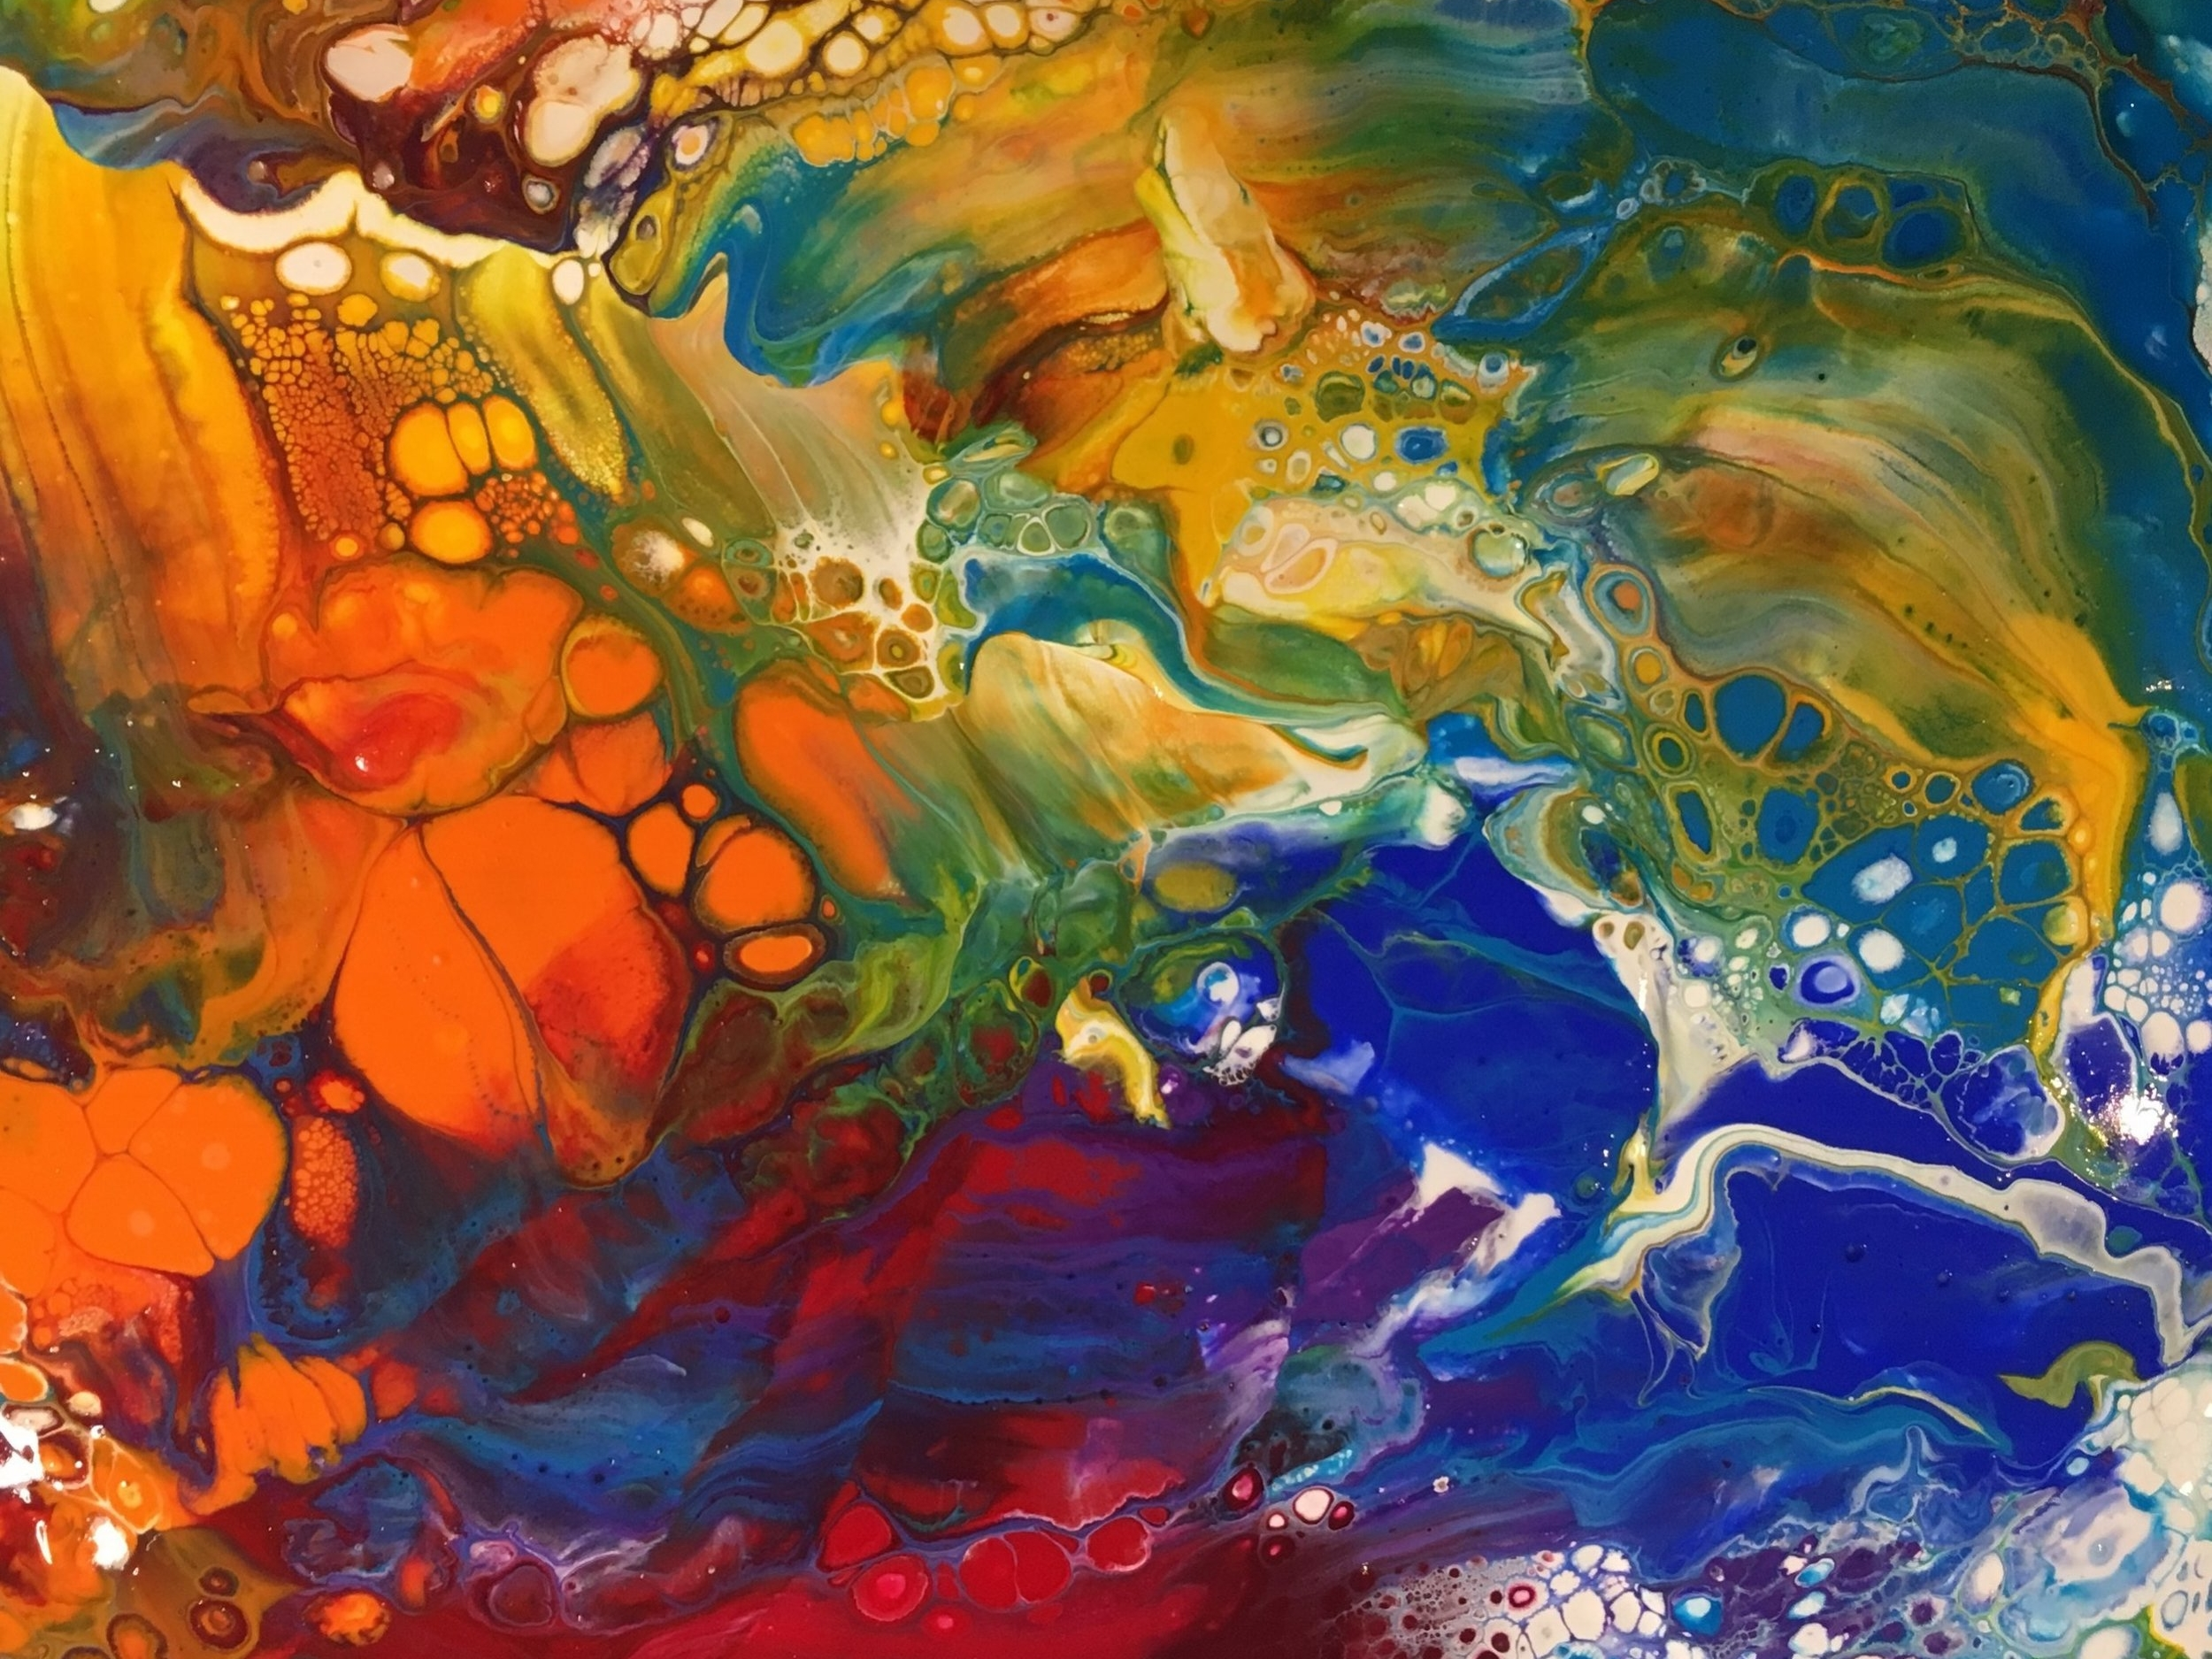 Fluid Art with Gravity Science